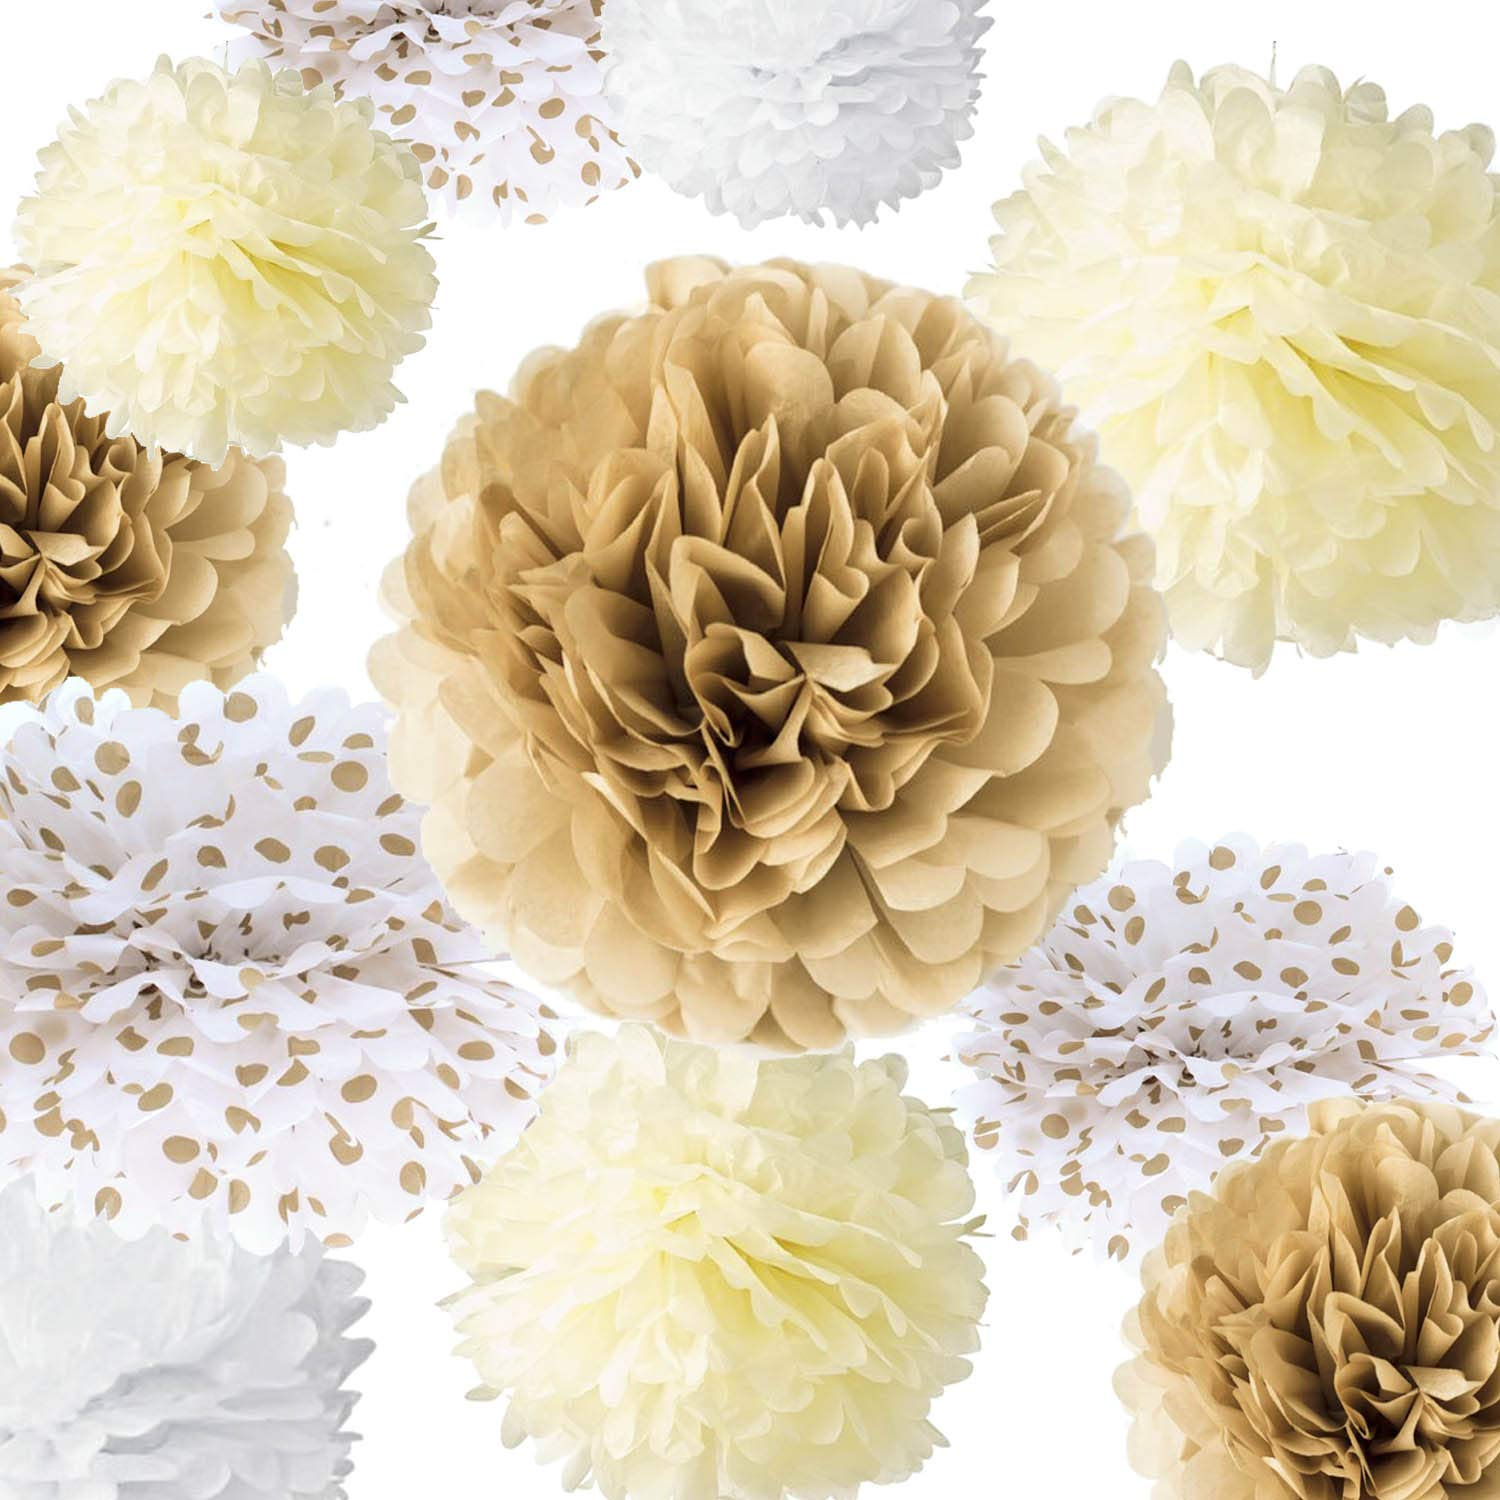 VIDAL CRAFTS 20 Pieces Tissue Paper Pom Poms Kit (14'', 10'', 8'', 6'' Paper Flowers) for Wedding, Birthday, Gender Neutral Baby Shower, Playroom or Nursery Decoration (champagne, ivory, white, polka dot) by Vidal Crafts for a perfect party